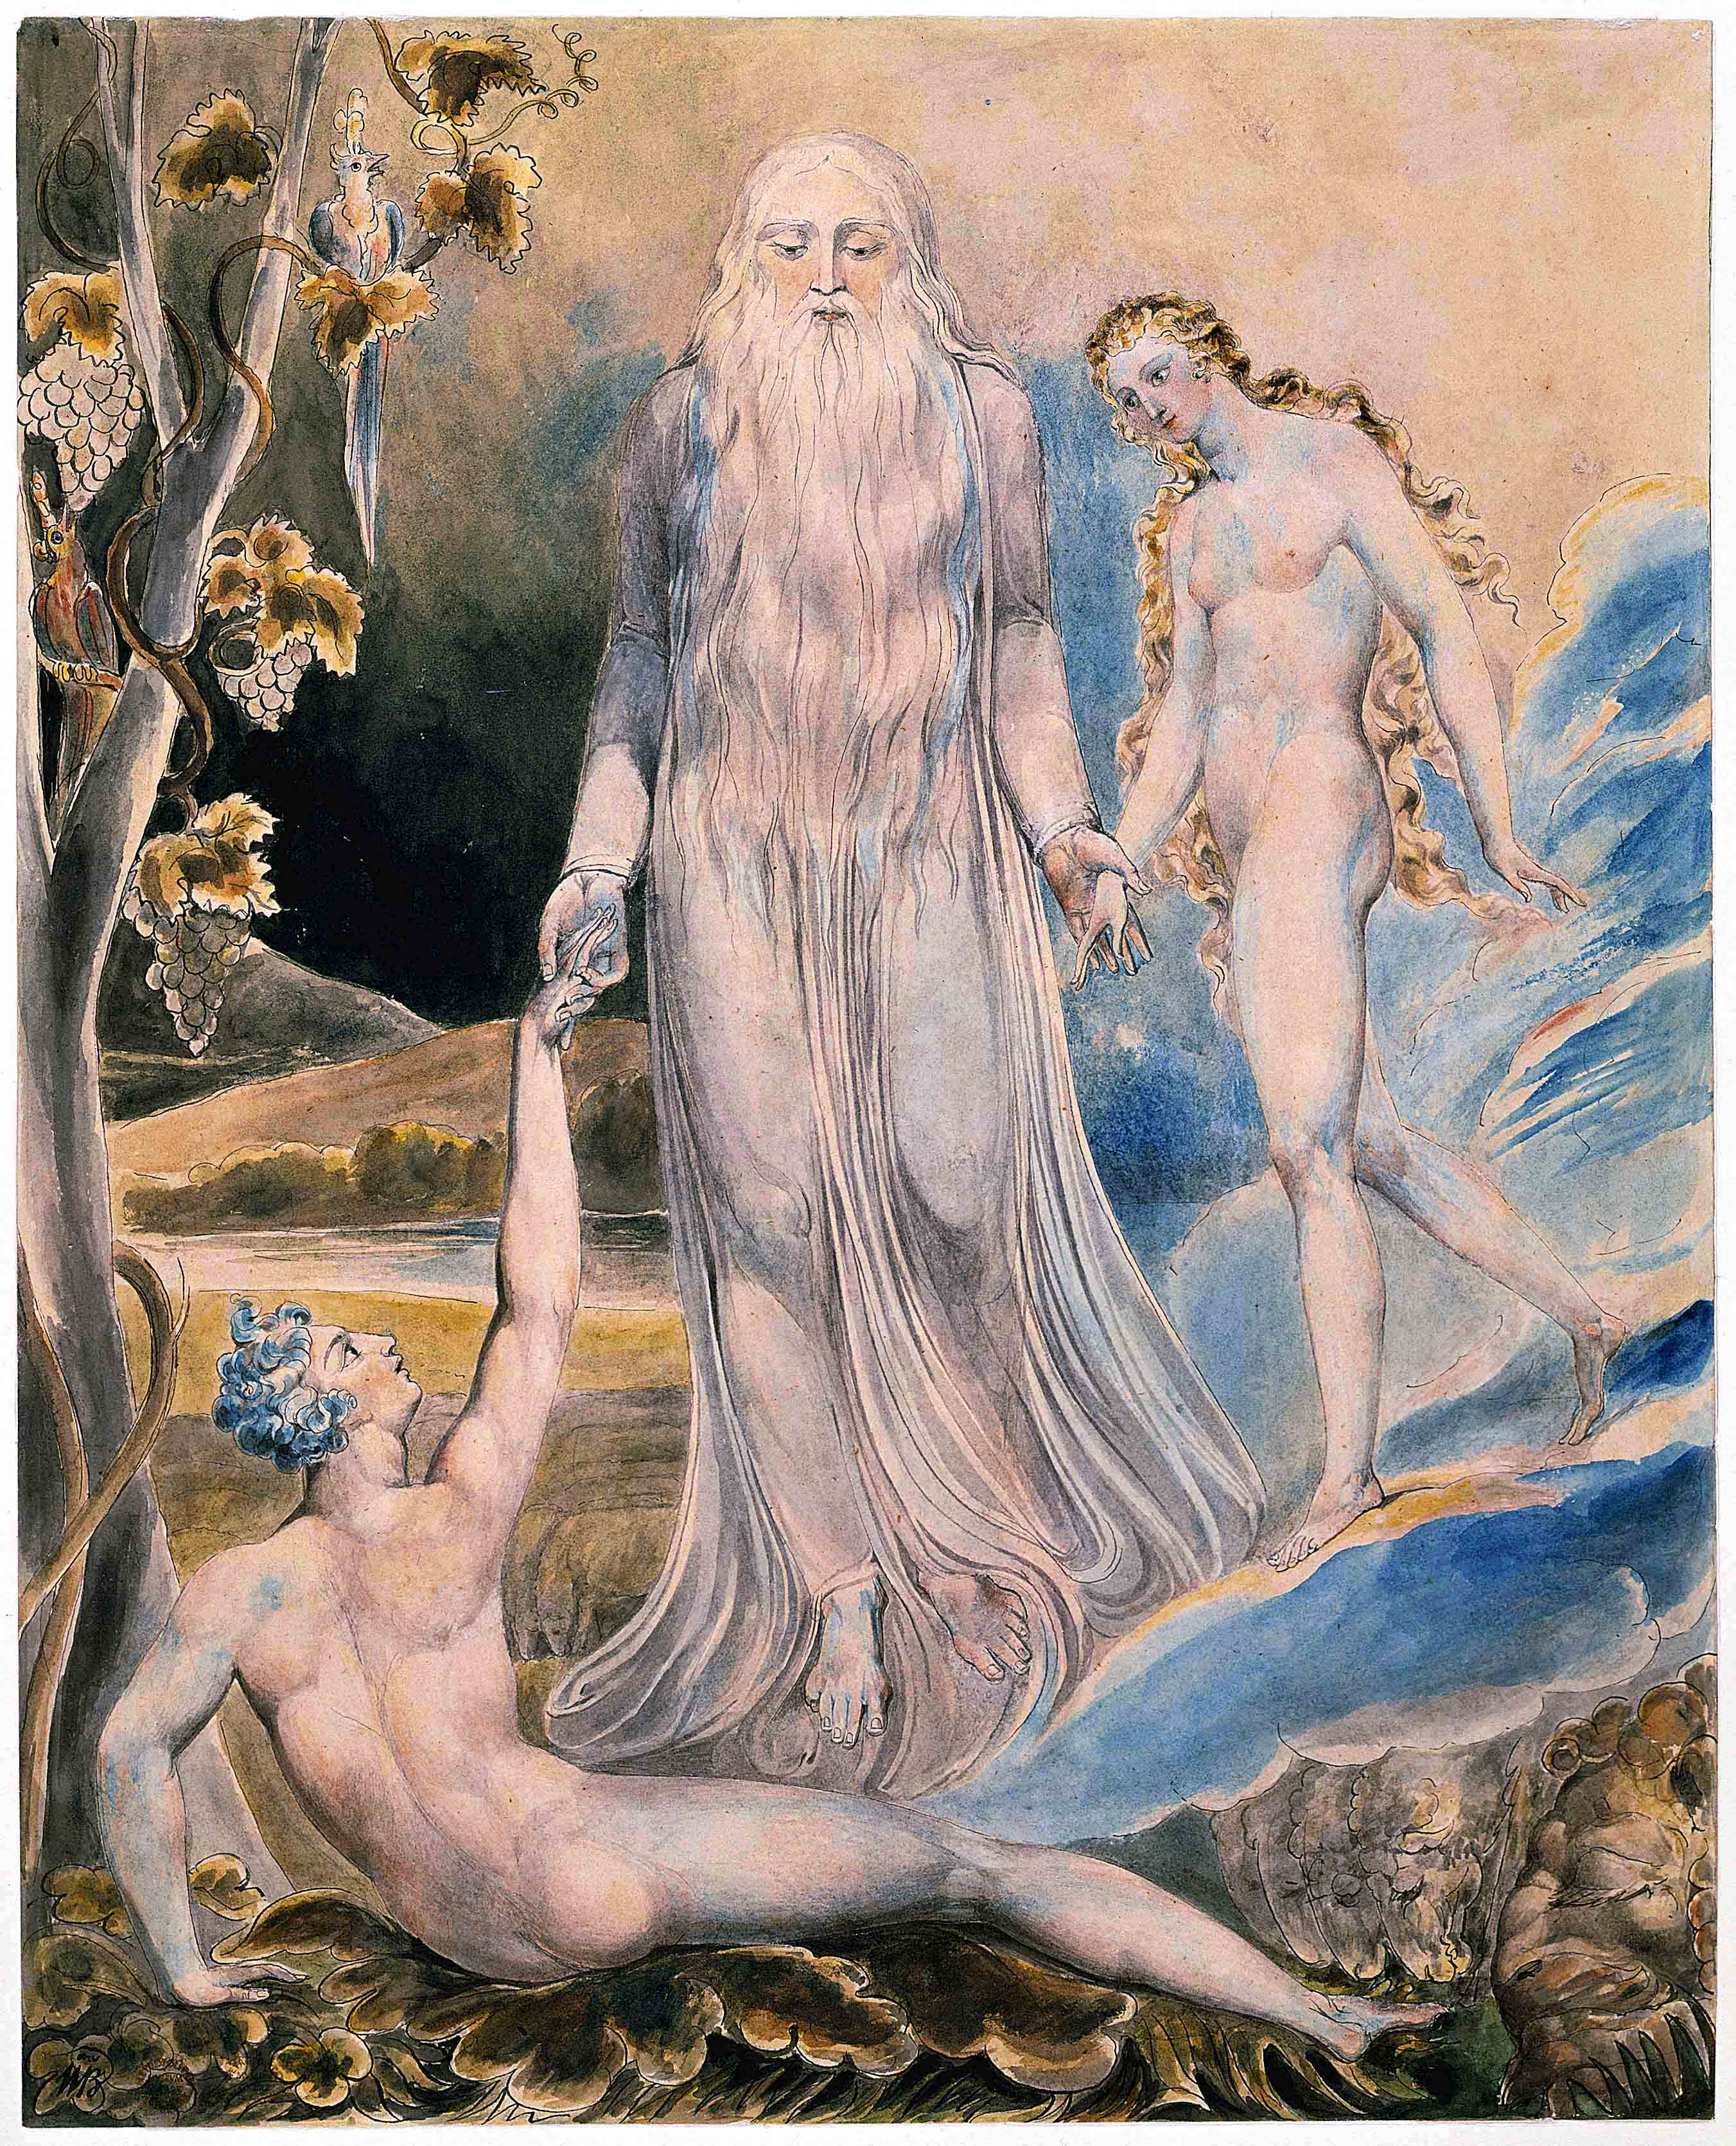 """William Blake's pencil illustration of The Creation of Eve in response to the line """"And She Shall Be Called Woman"""". The object was created c. 1803-05 and currently is held by the Metropolitan Museum of Art [5]"""